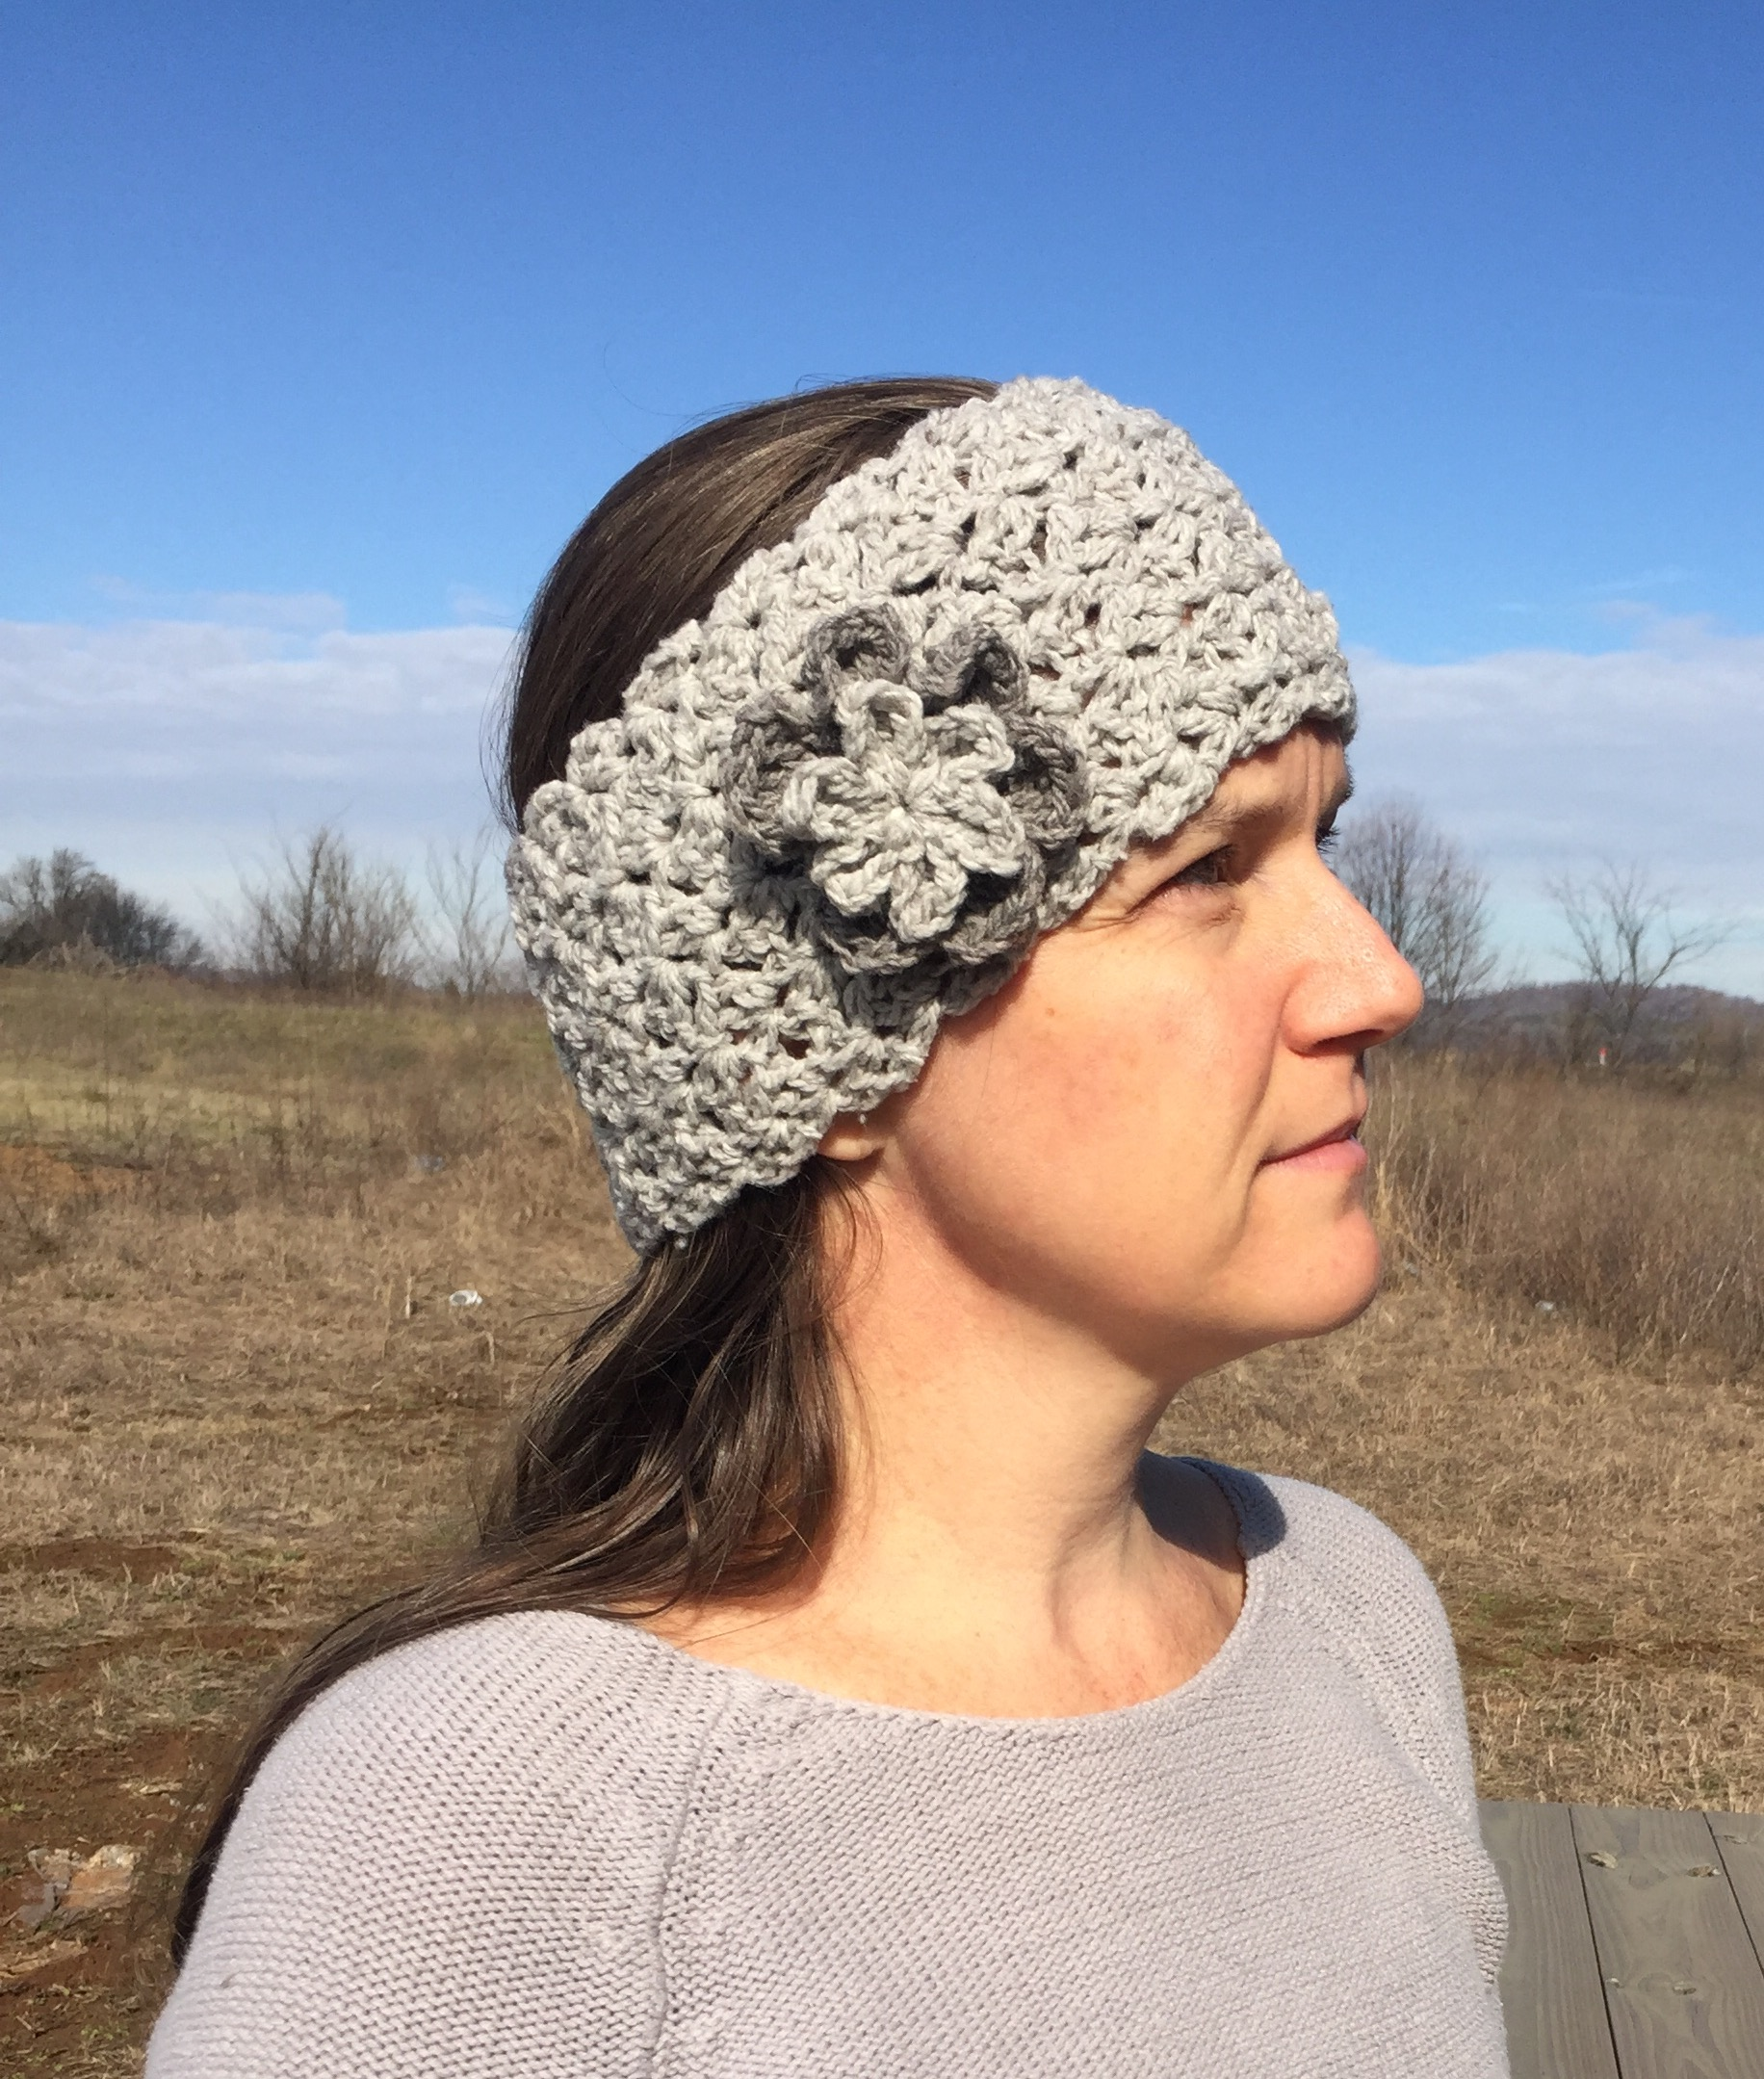 Queen's Lace Ear Warmer in merino wool crochet pattern by Little Monkey's Designs